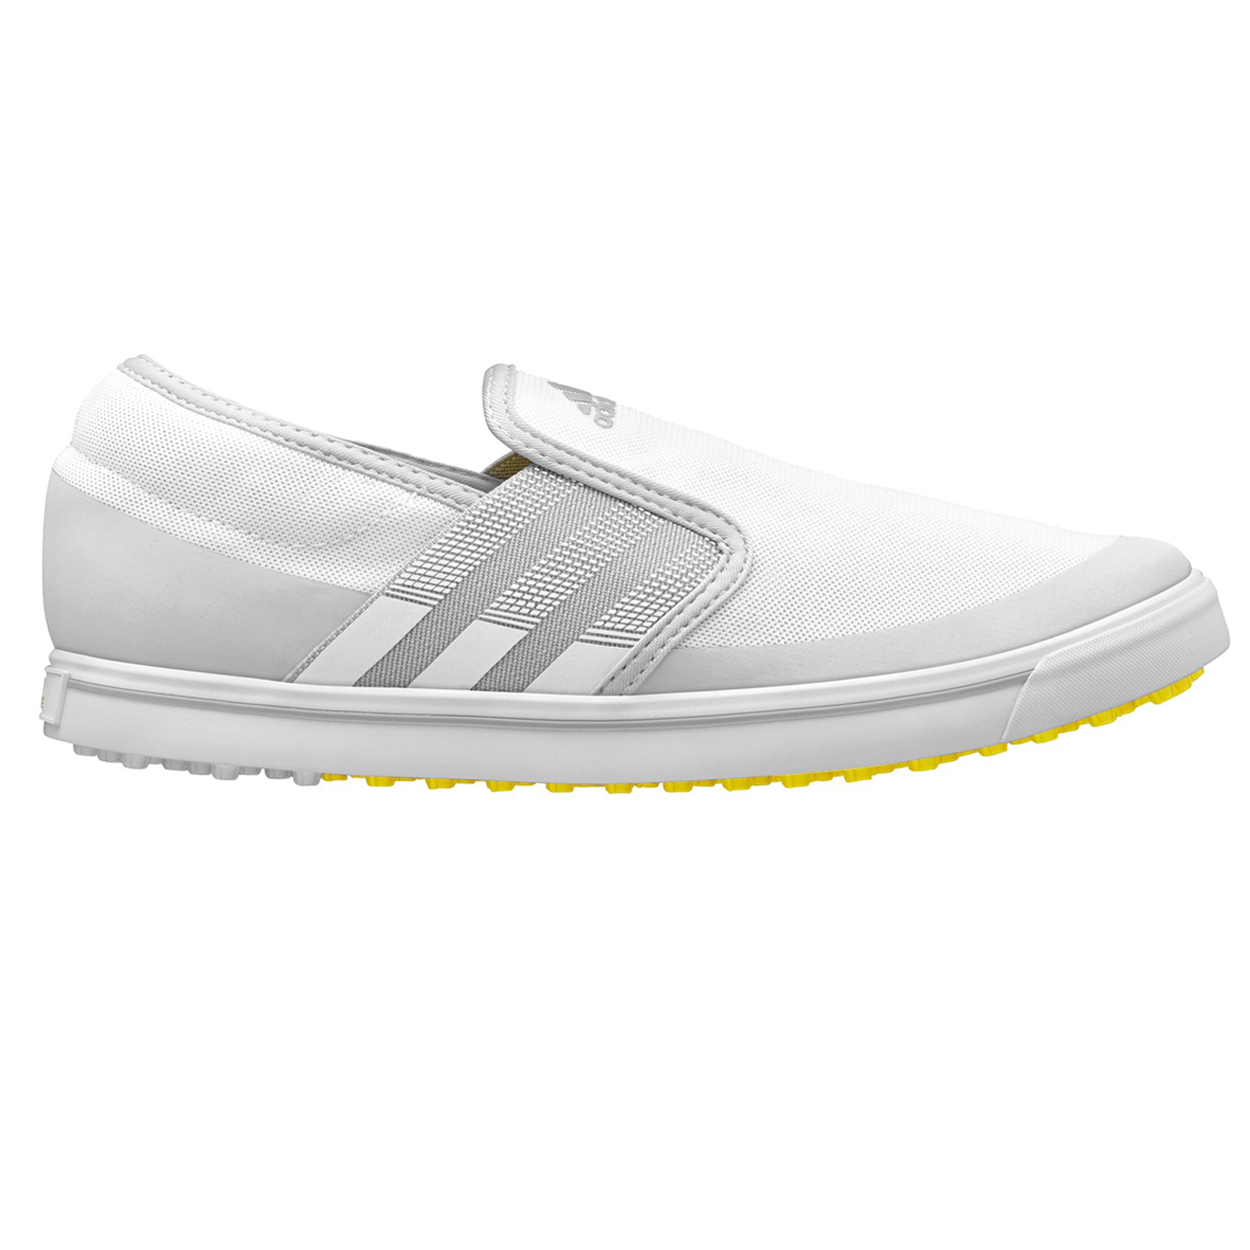 adidas womens adicross sl spikeless golf shoes ebay